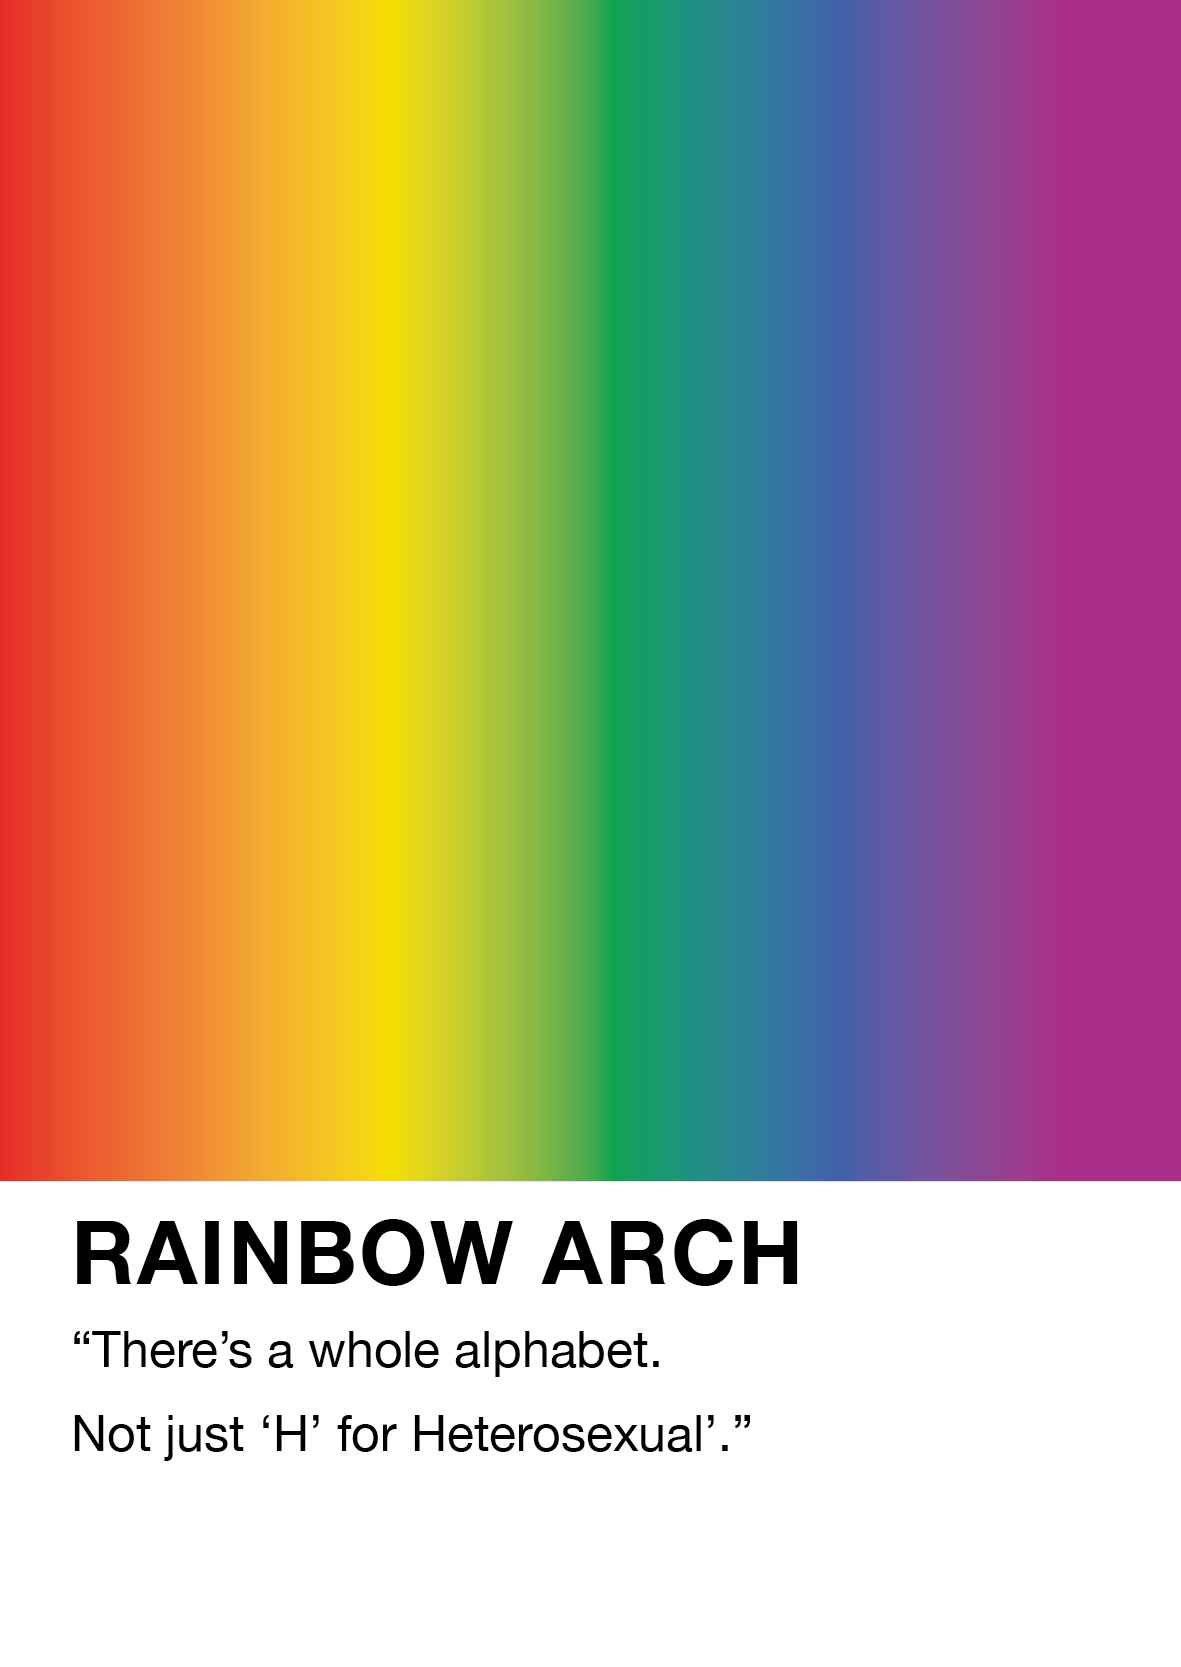 """Image shows a rainbow gradient, with text underneath that says Rainbow Arch """"There's a whole alphabet. Not just 'H' for heterosexual""""."""